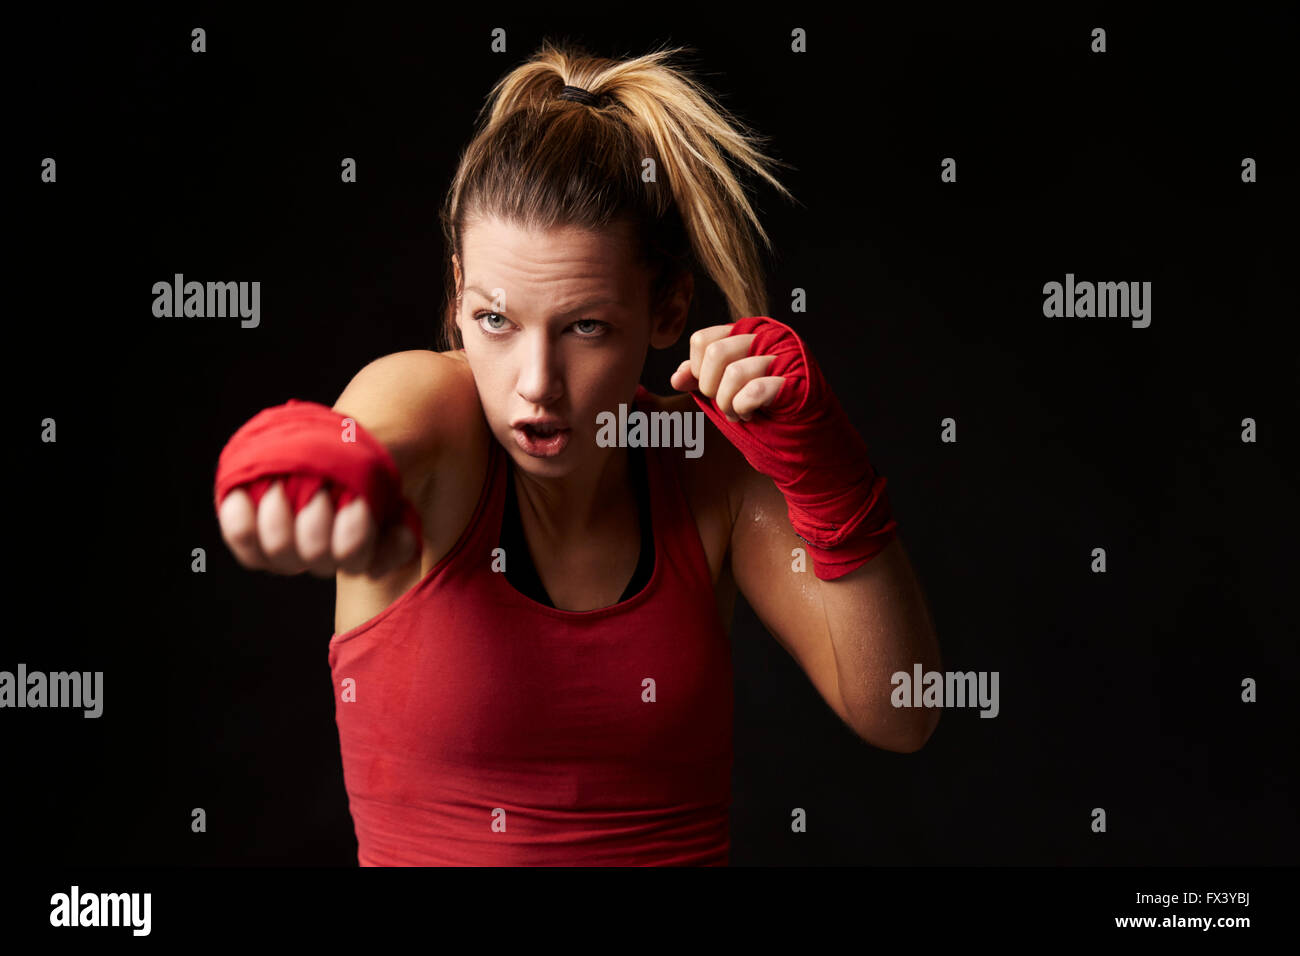 Young blonde woman shadow boxing, throwing a punch - Stock Image